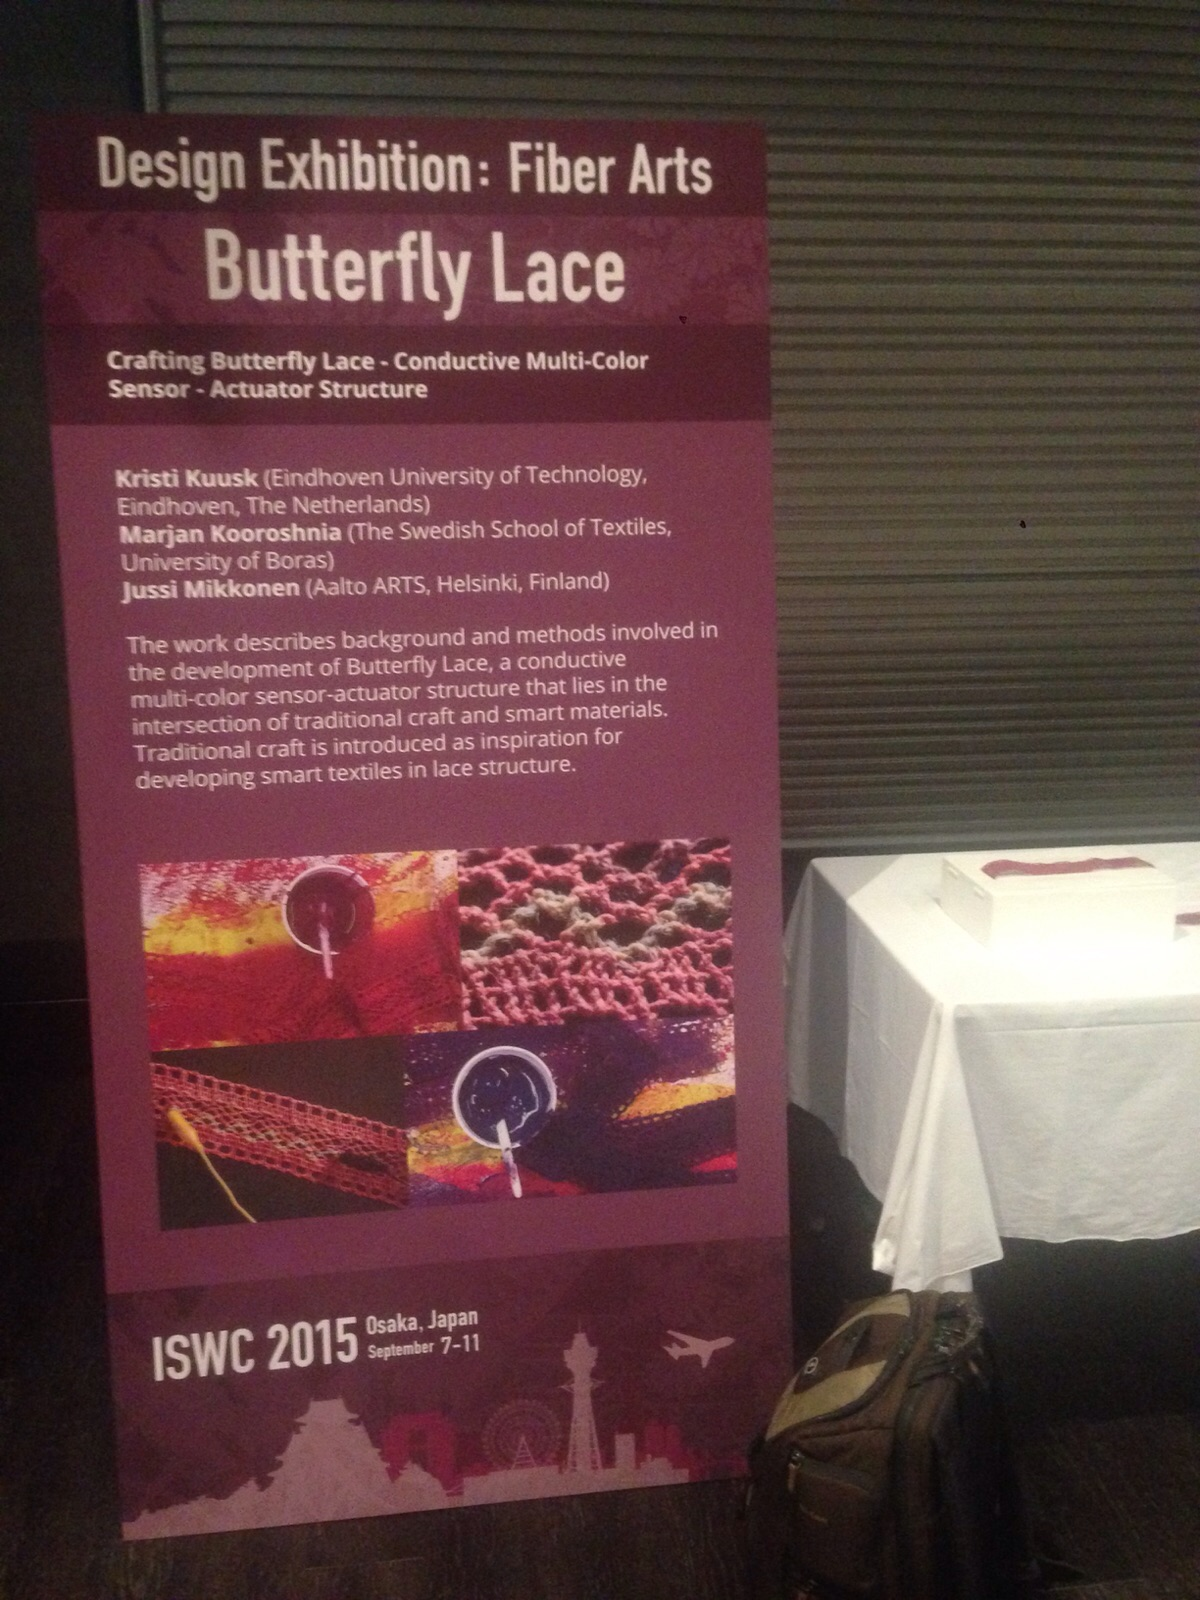 Developing Butterfly Lace